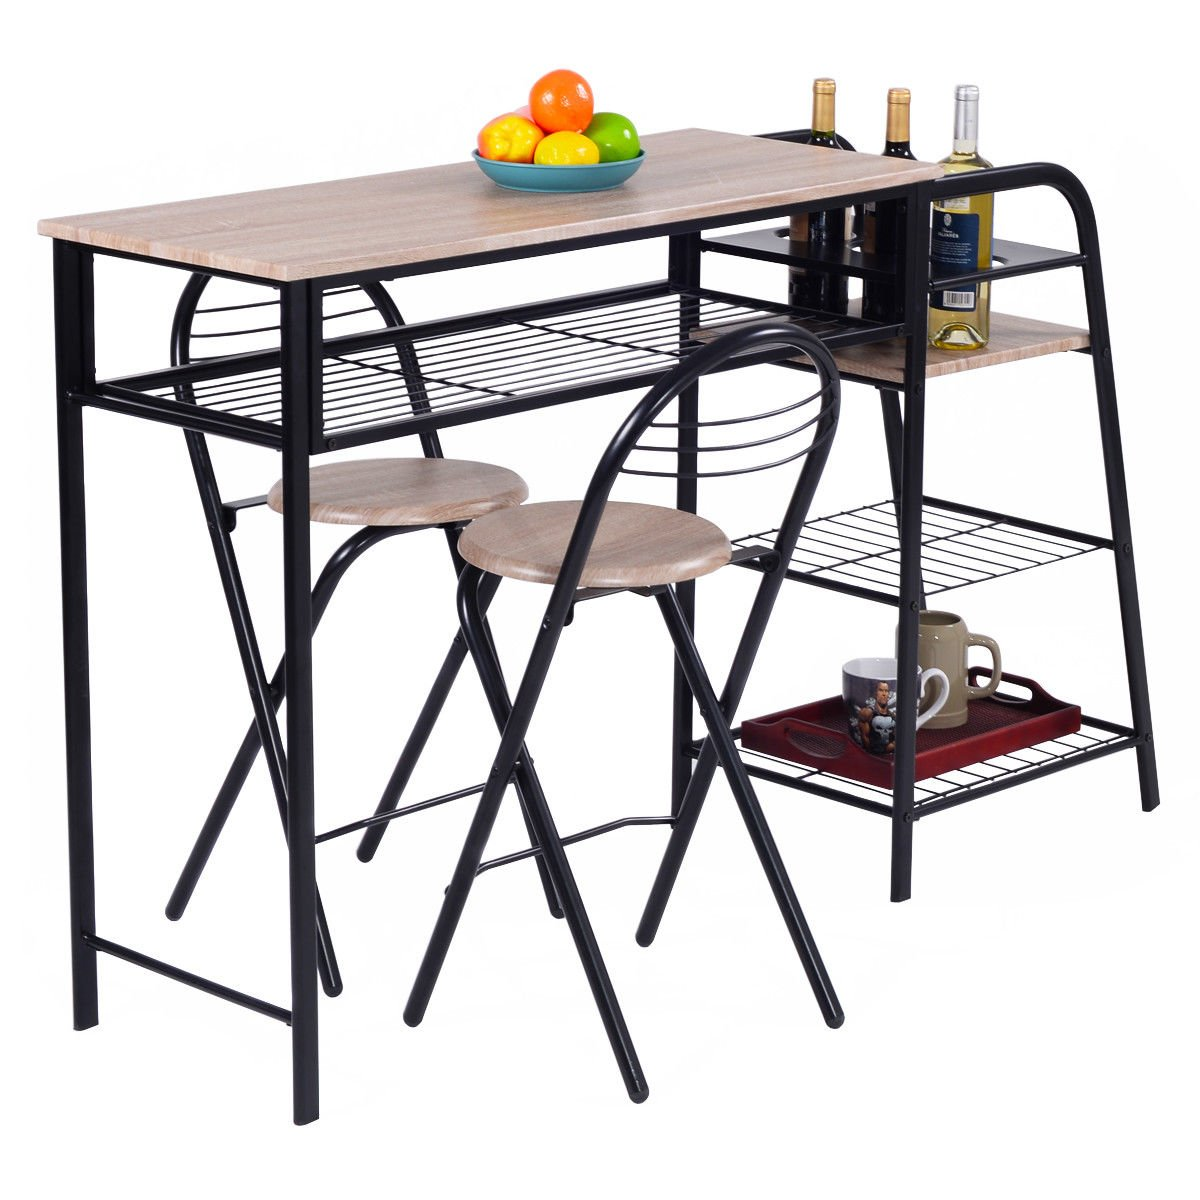 Giantex 3 PC Pub Dining Set Table Chairs Counter Height Home Breakfast w/Storage Shelves